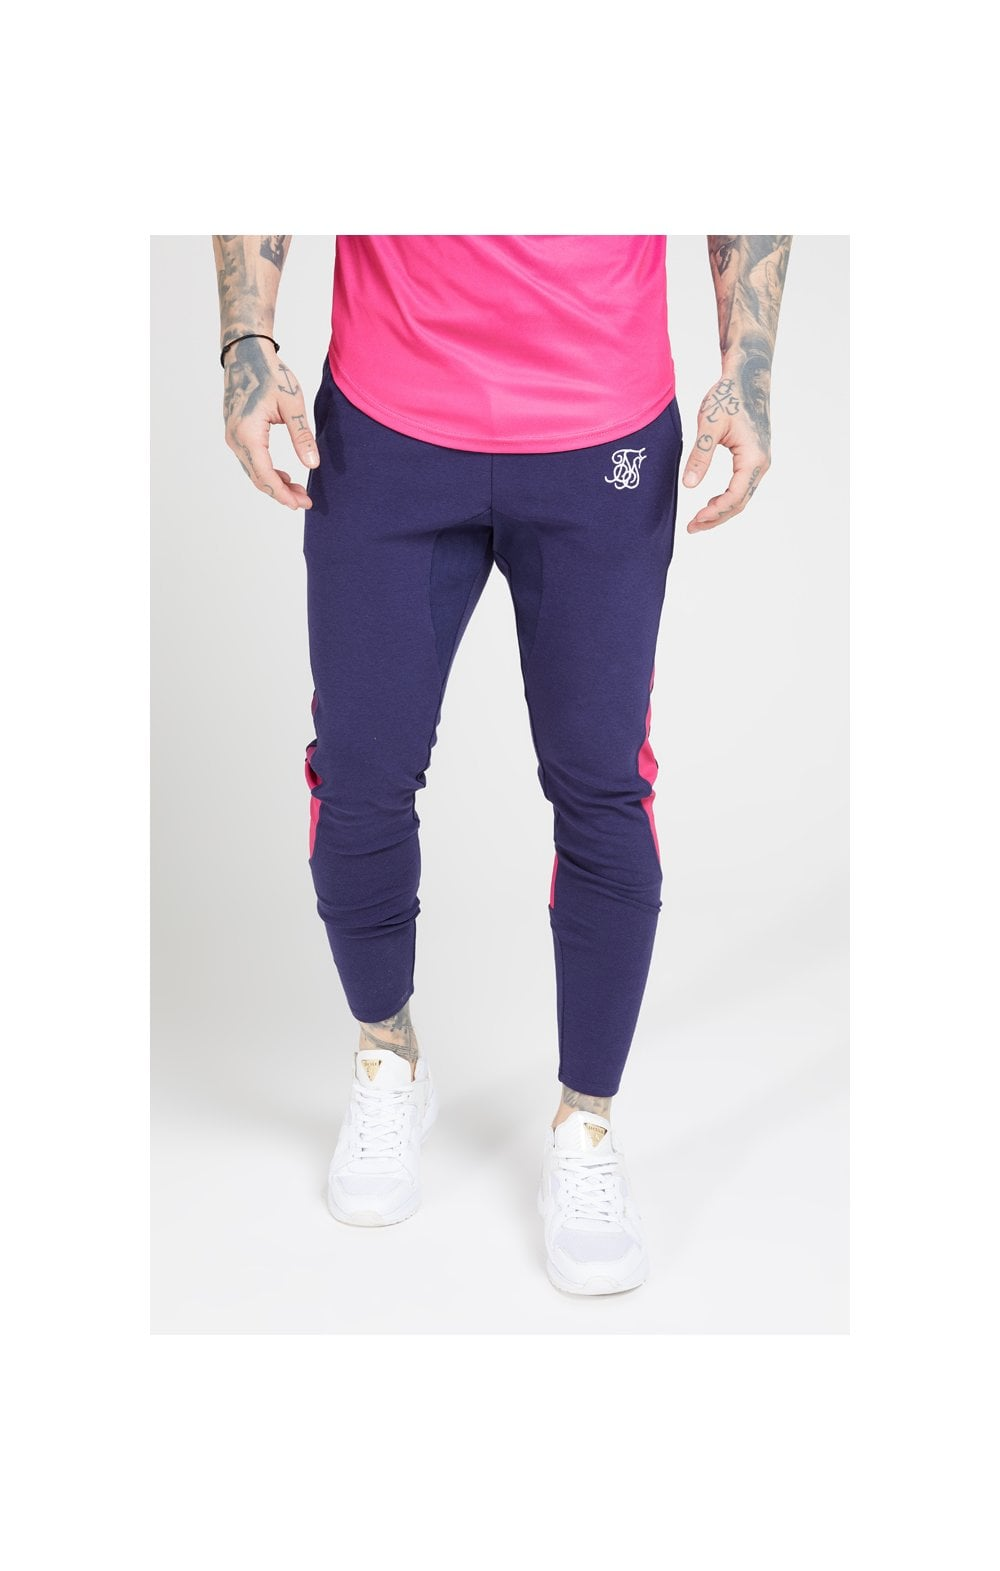 Load image into Gallery viewer, SikSilk Athlete Tech Fade Track Pants – Navy & Neon Fade (1)